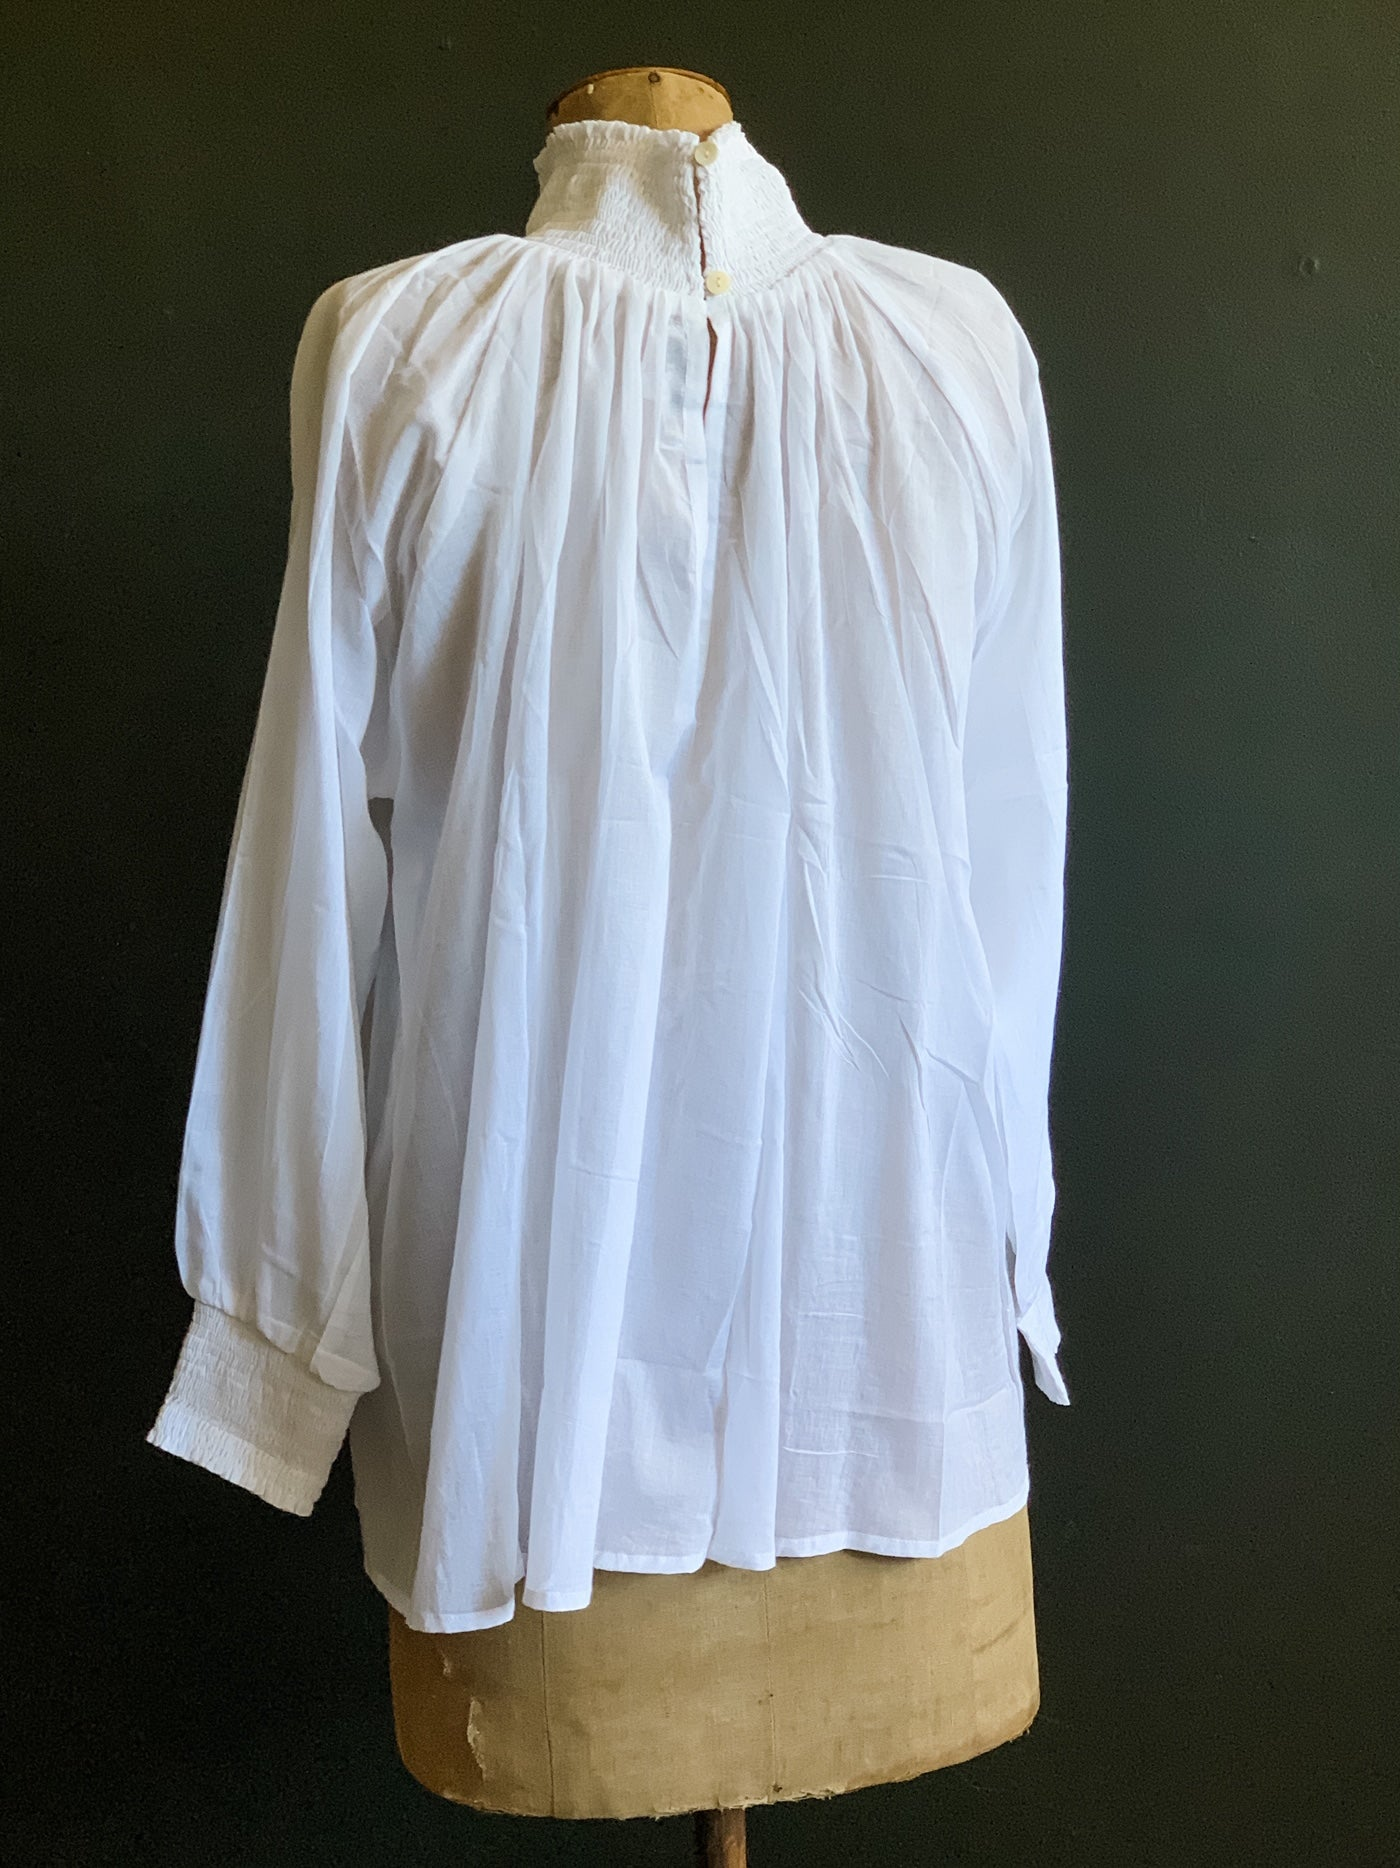 Angel Top - White Sheer Cotton